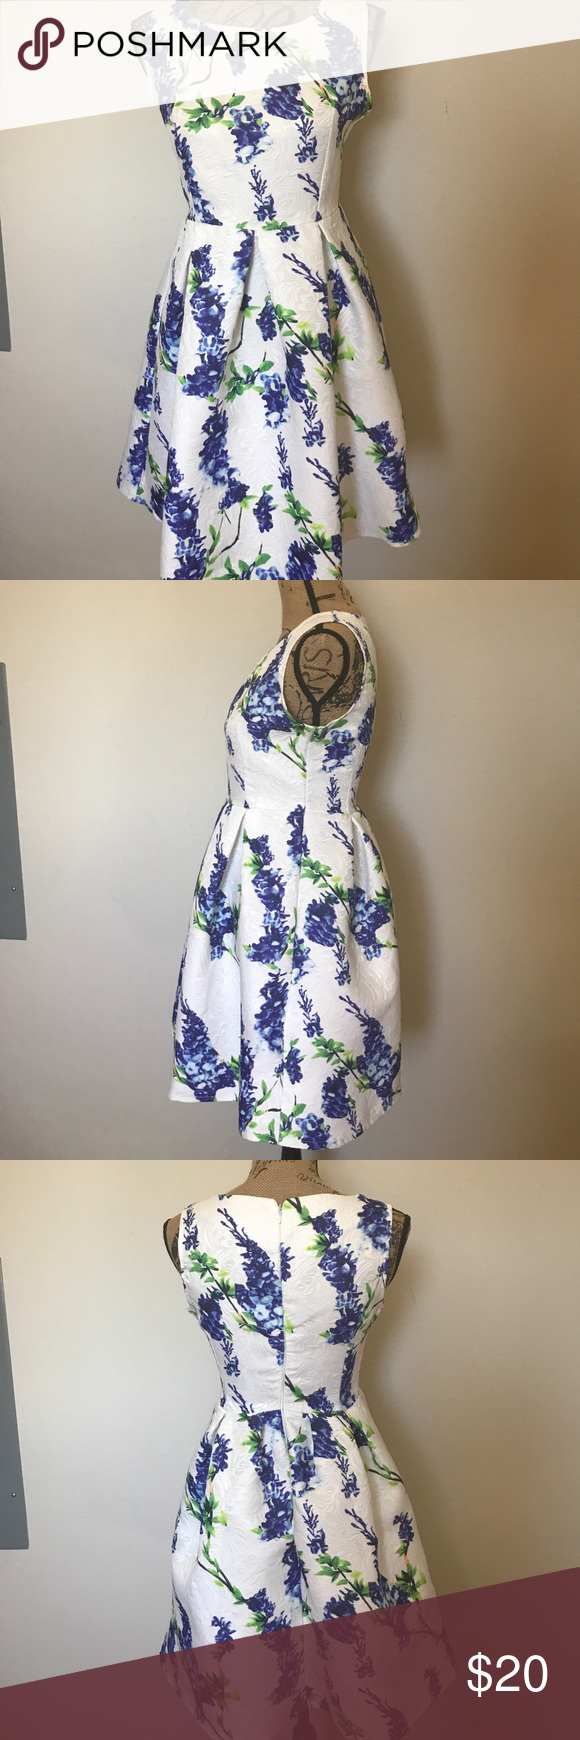 Euc minty gogo floral dress white floral dress floral and minis euc minty gogo floral dress izmirmasajfo Image collections